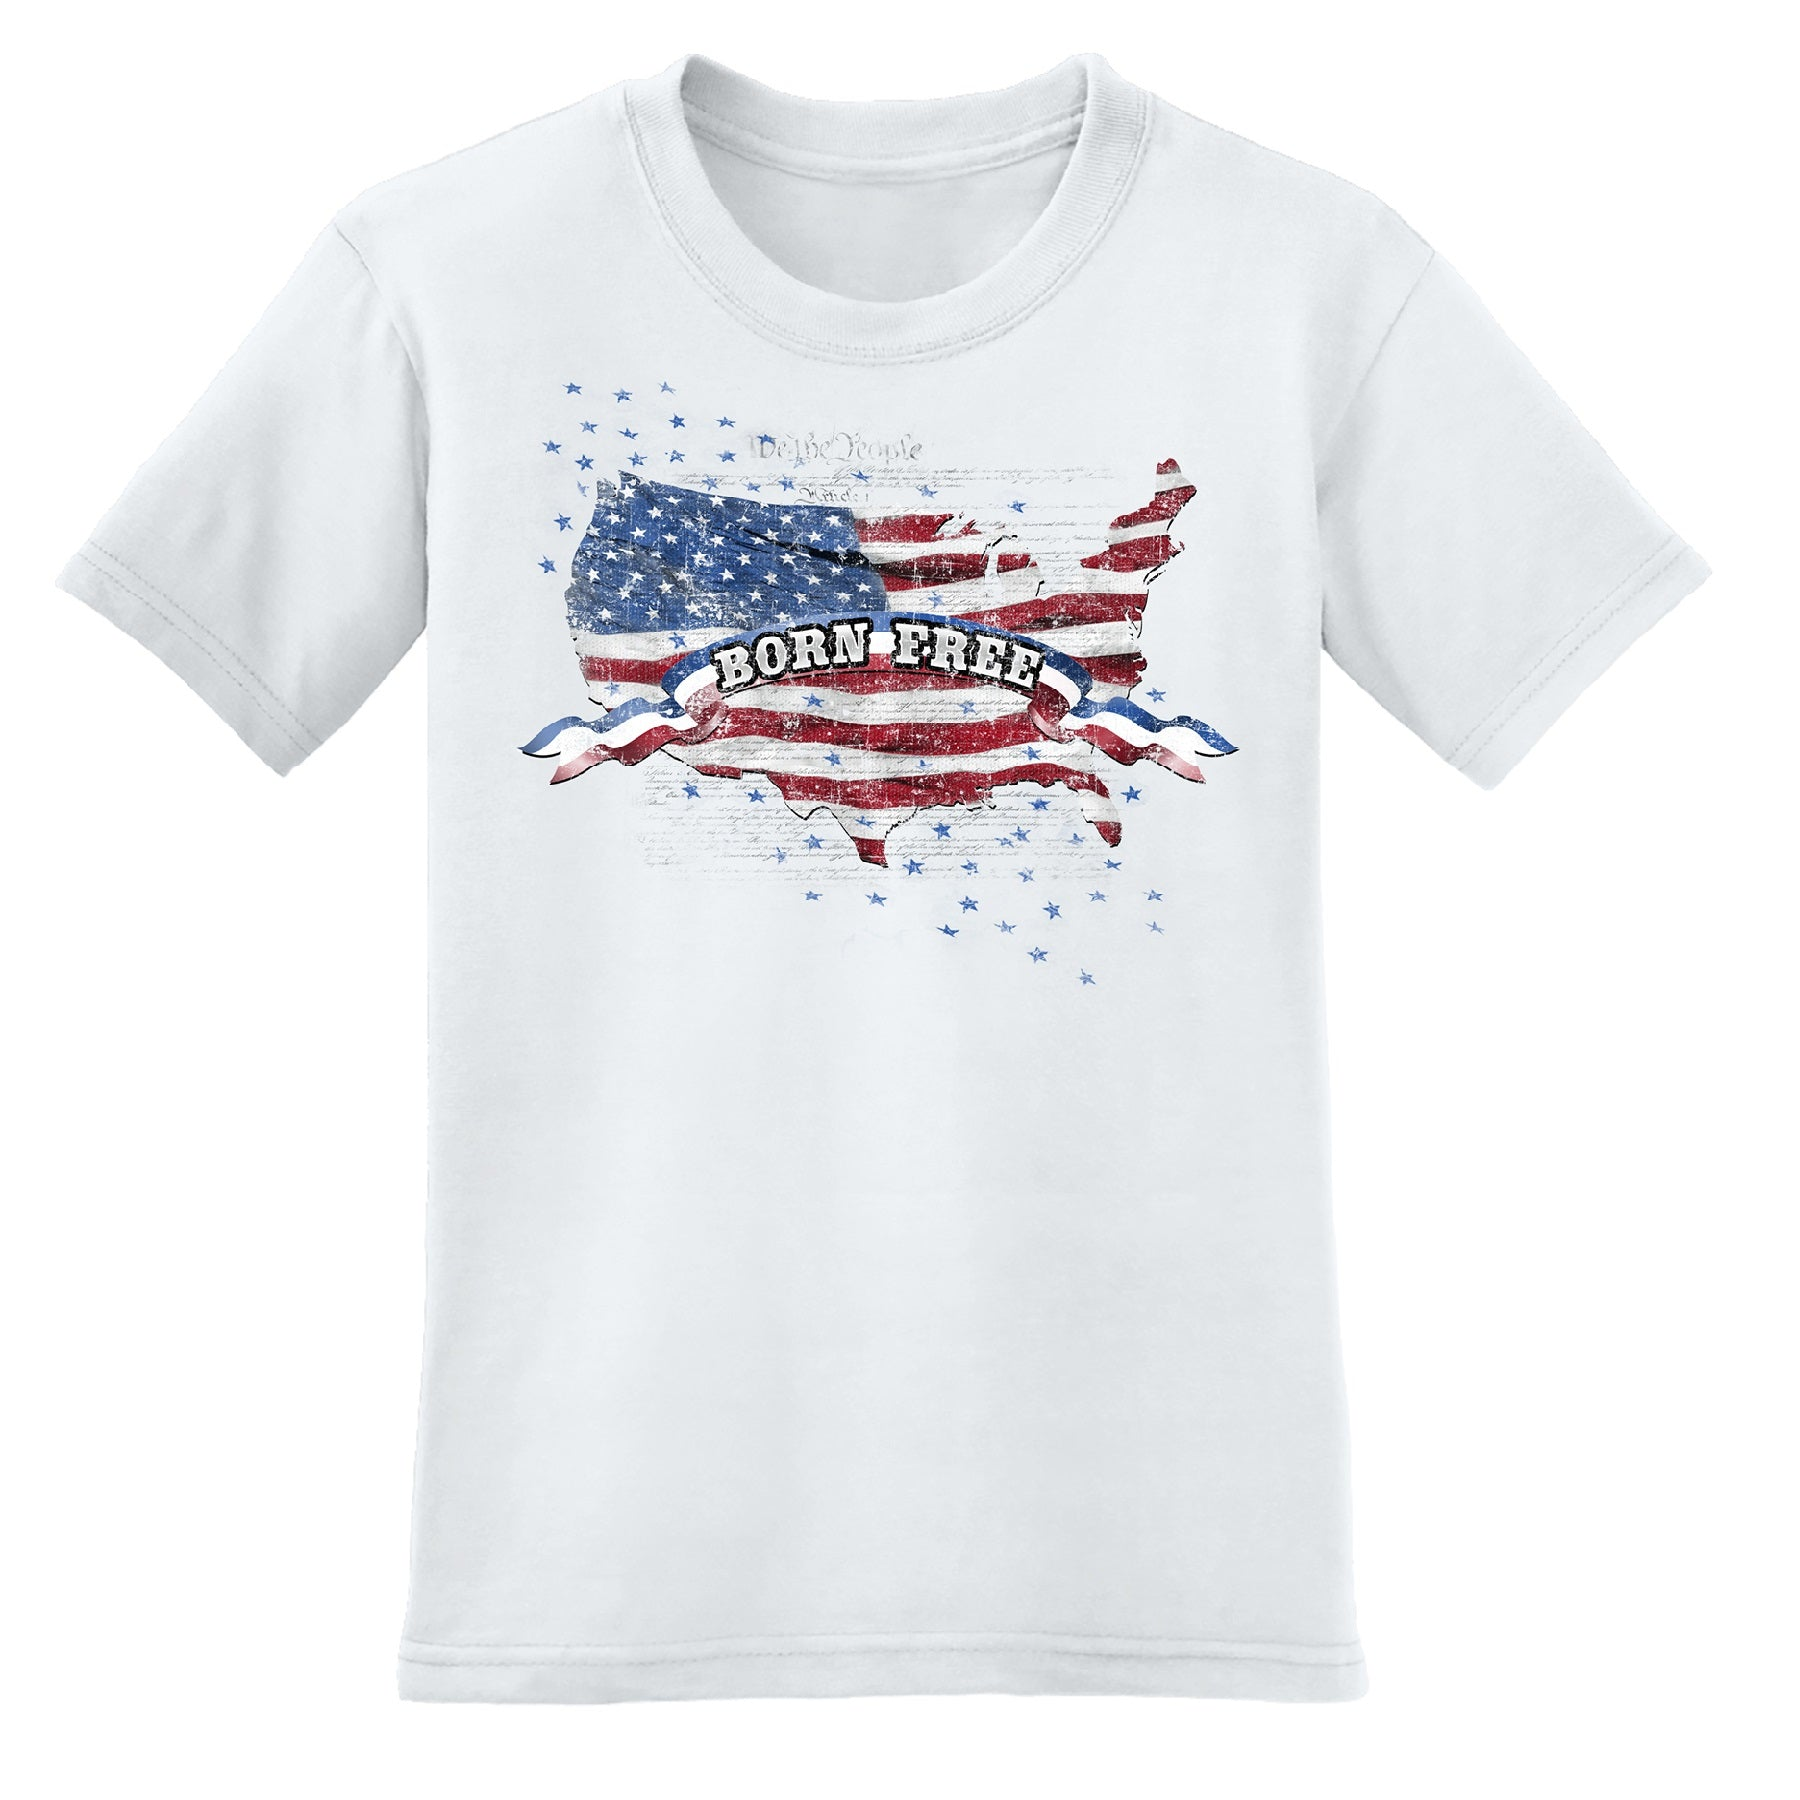 Born Free Men's T-Shirt 100% Made In America - theflagshirt